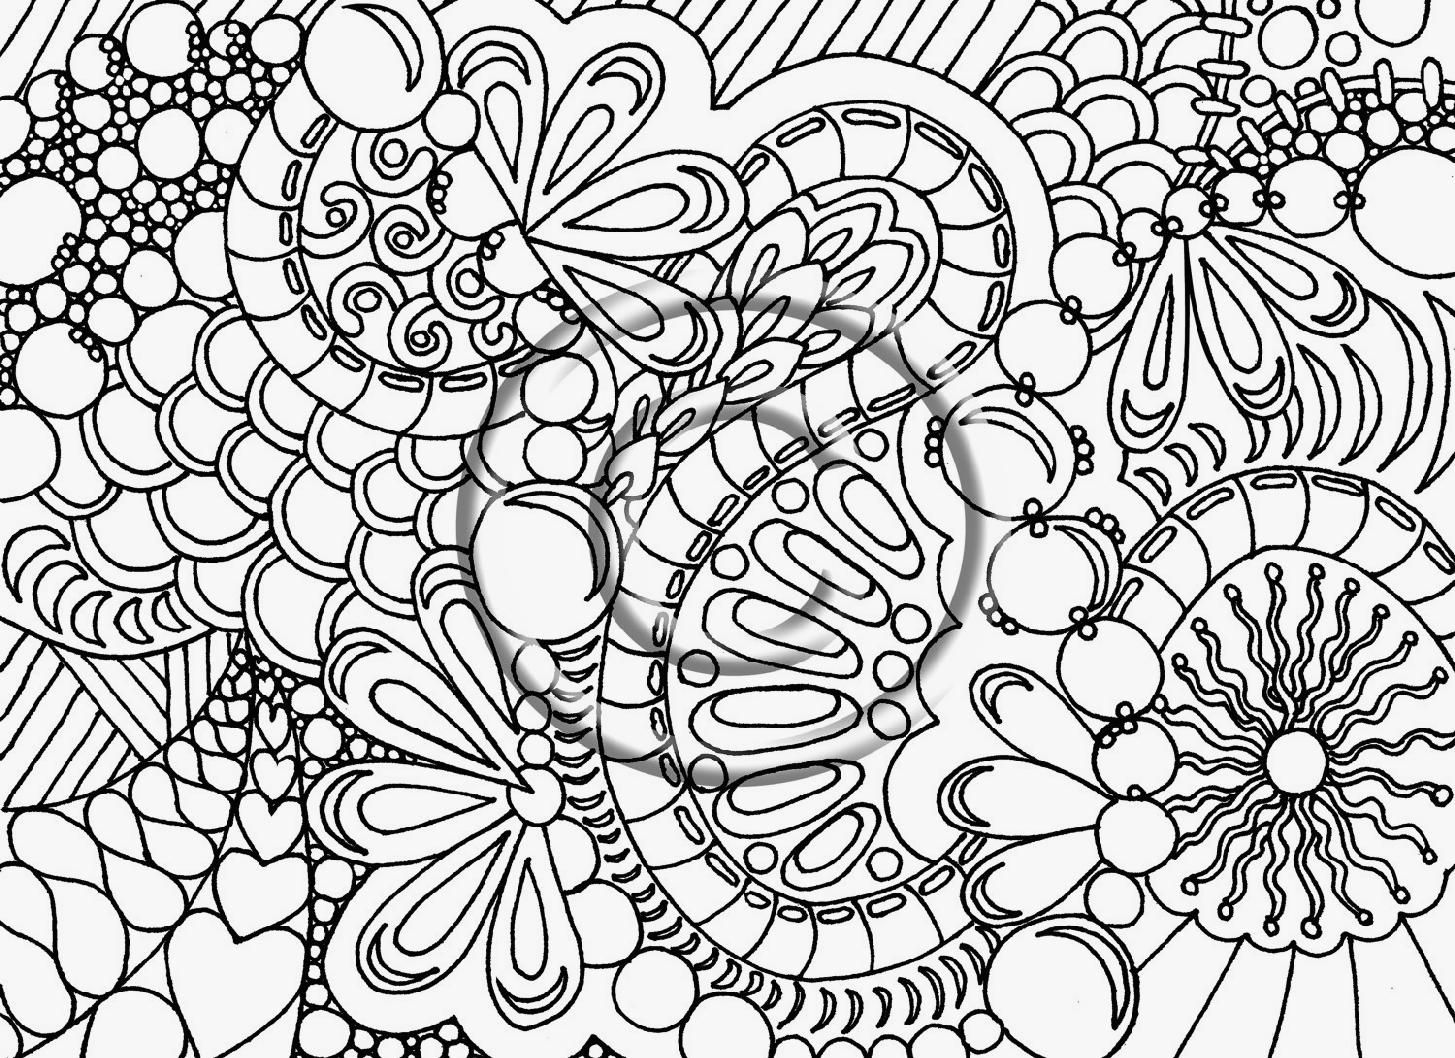 coloring books for adults online adult coloring sheets free coloring sheet adults coloring books online for